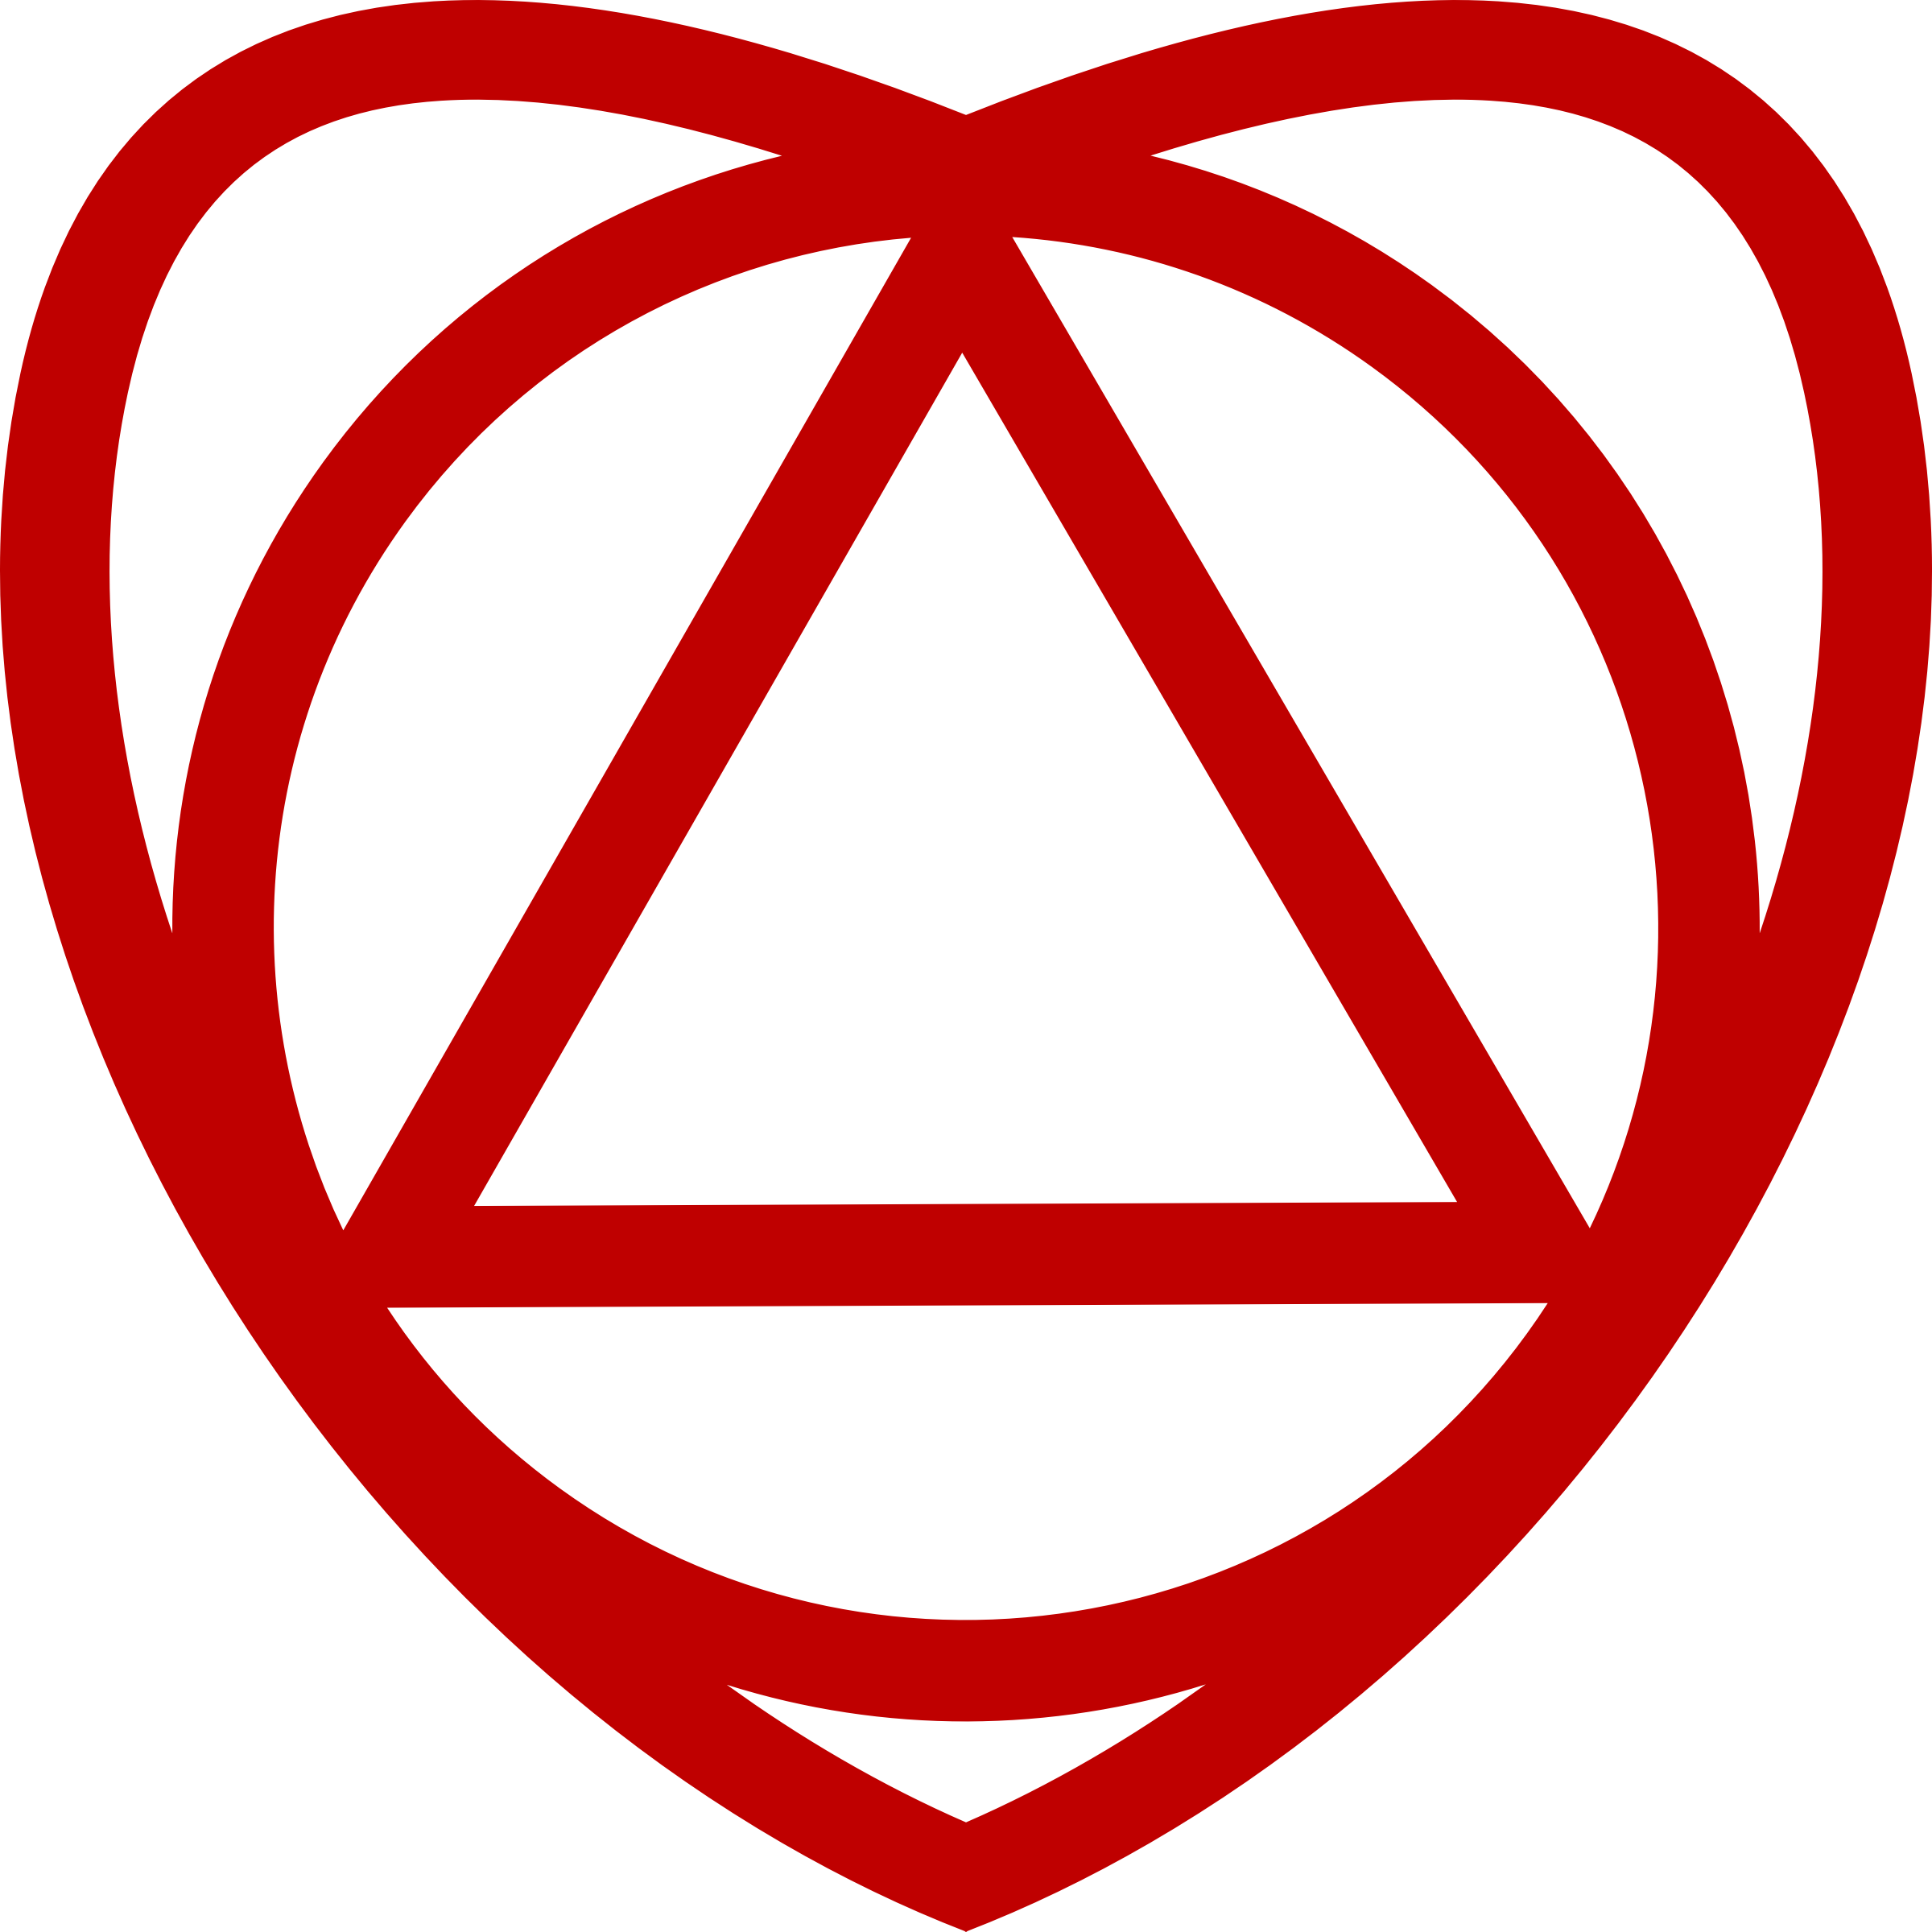 Free stock photo of triangle in circle in heart vector clipart triangle in circle in heart graphic by philip barrington buycottarizona